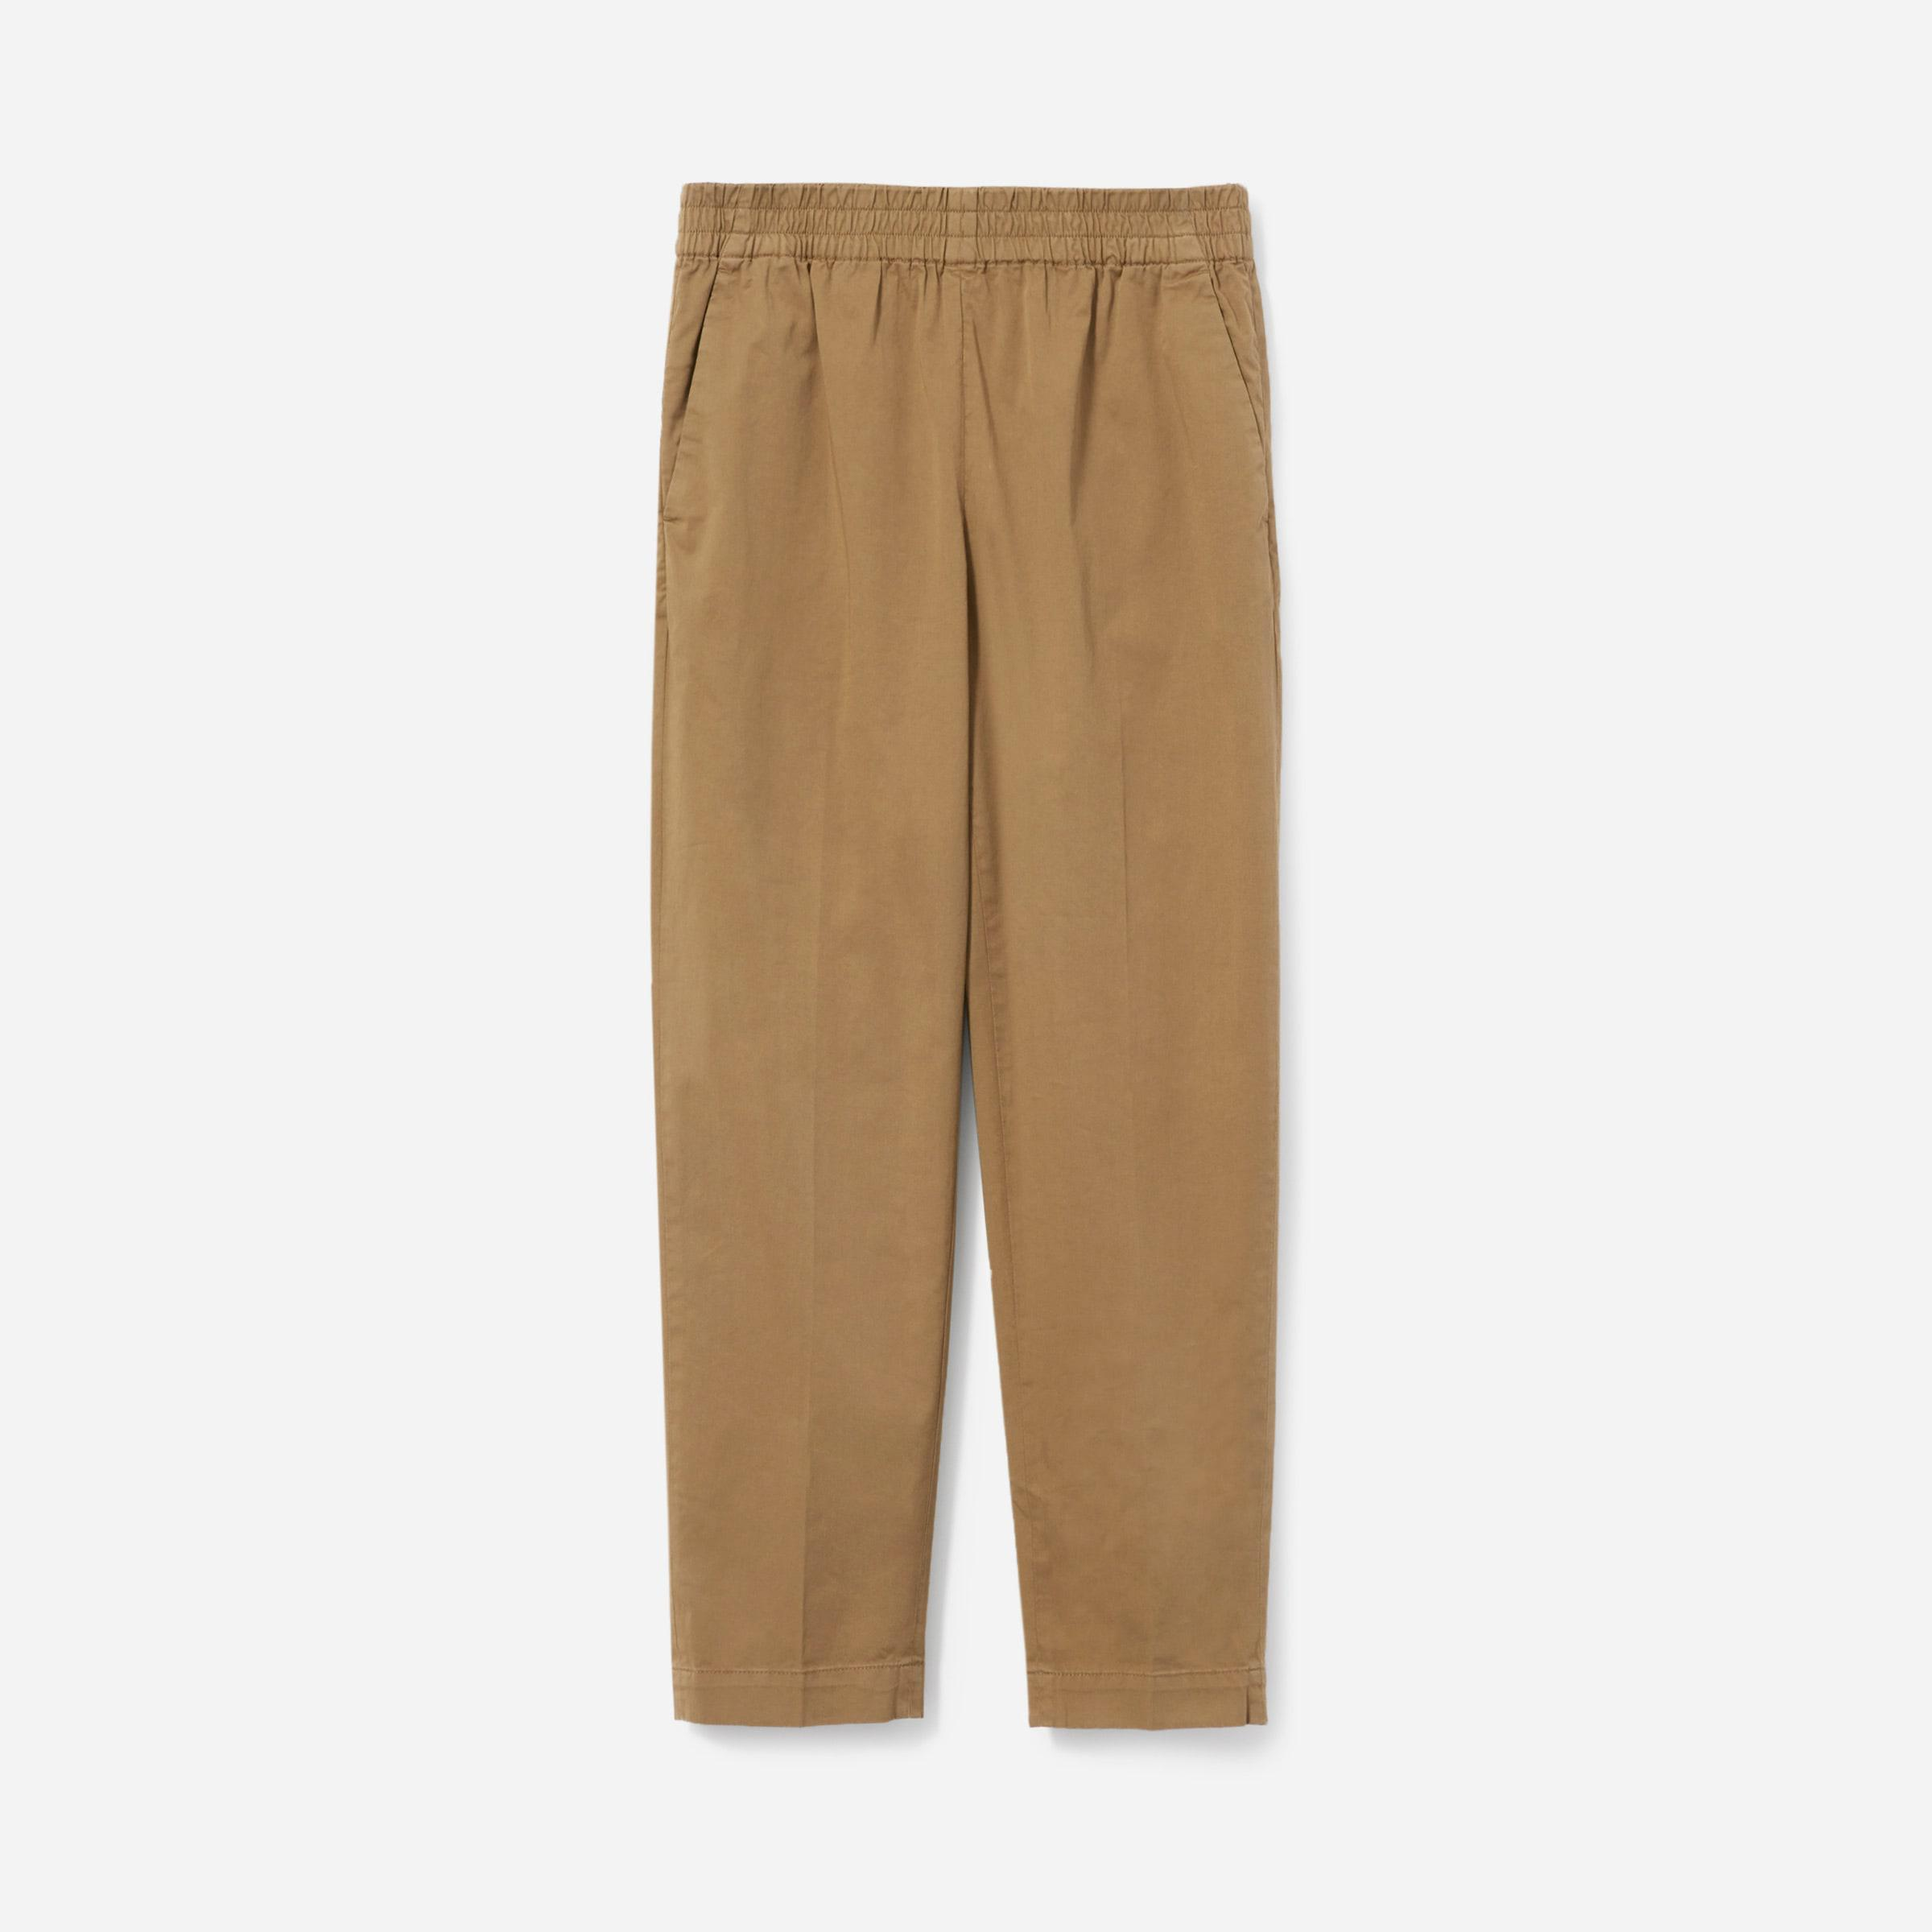 The Easy Chino 5